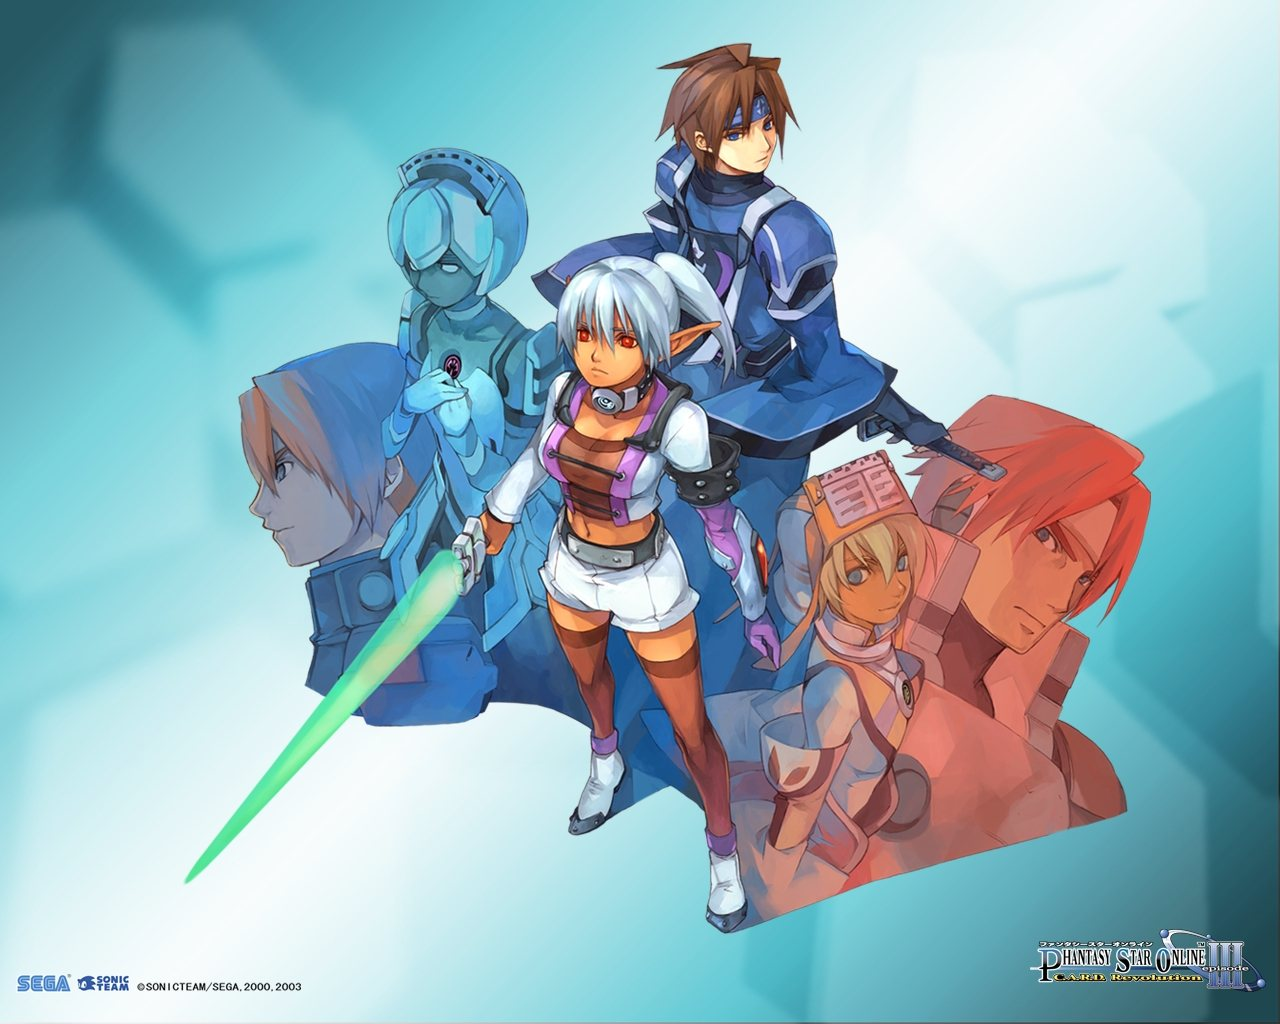 Phantasy Star Online Pics, Video Game Collection